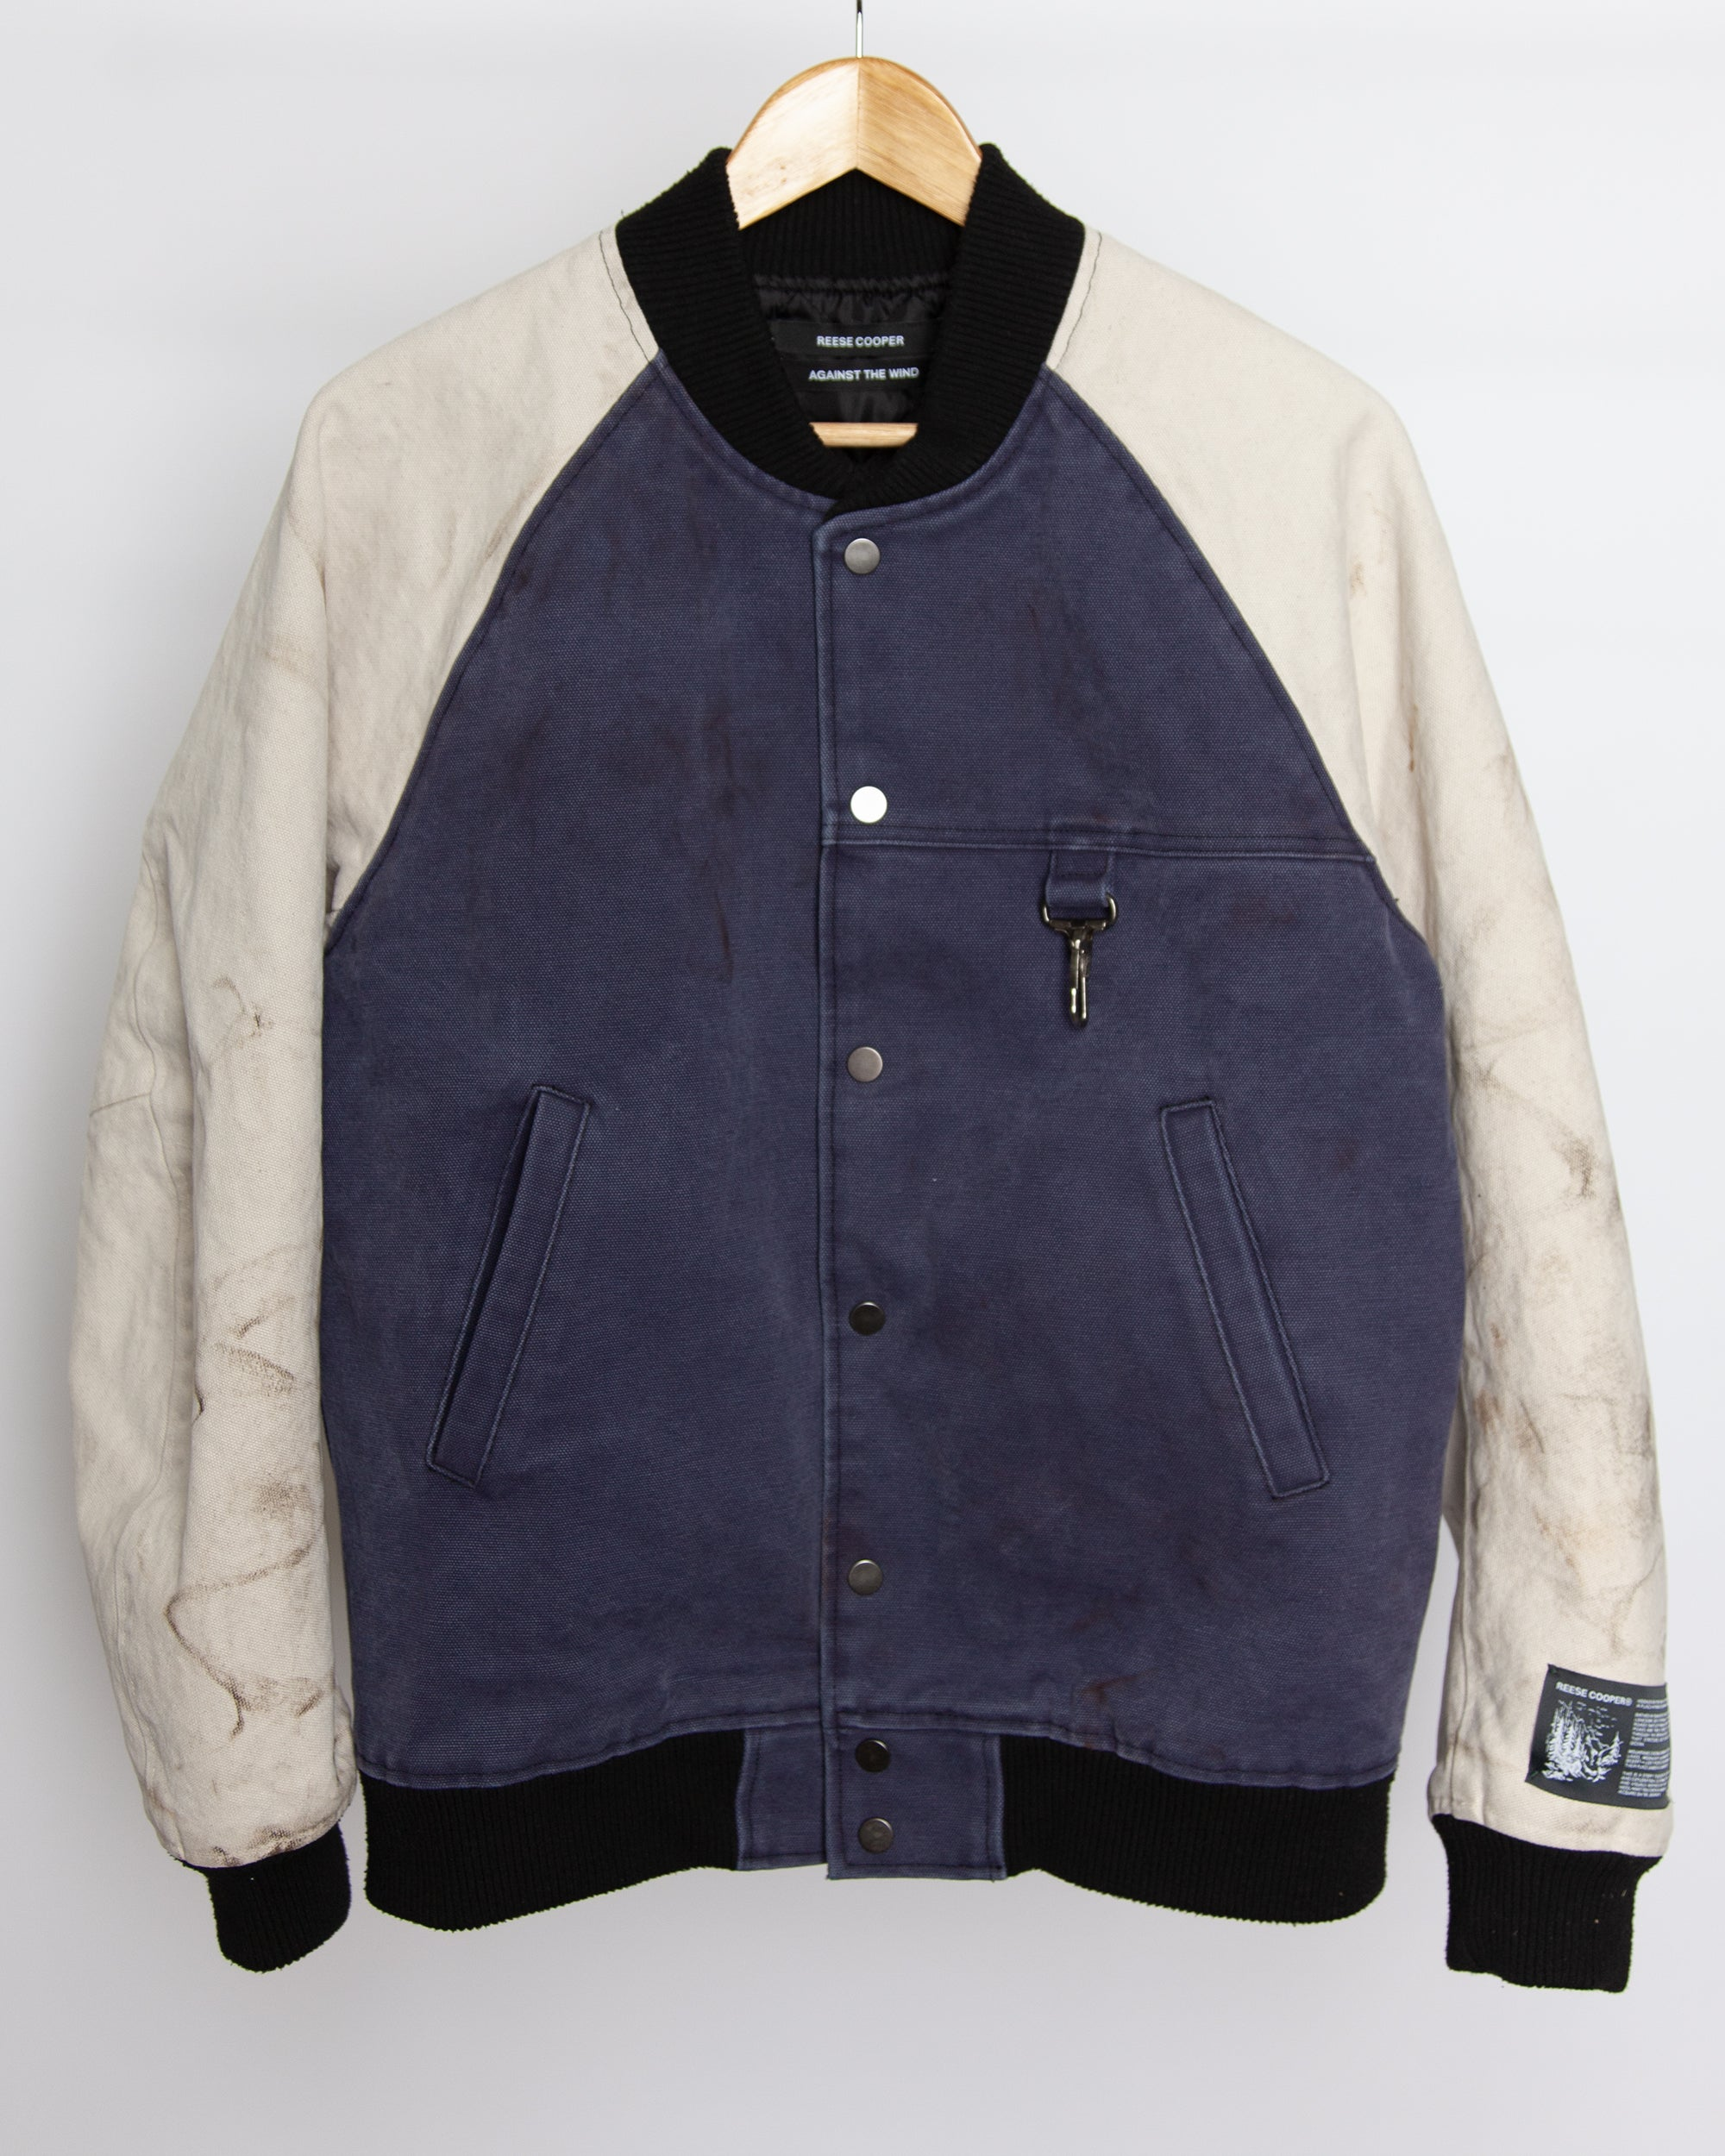 Against The Wind - Varsity Jacket in Navy